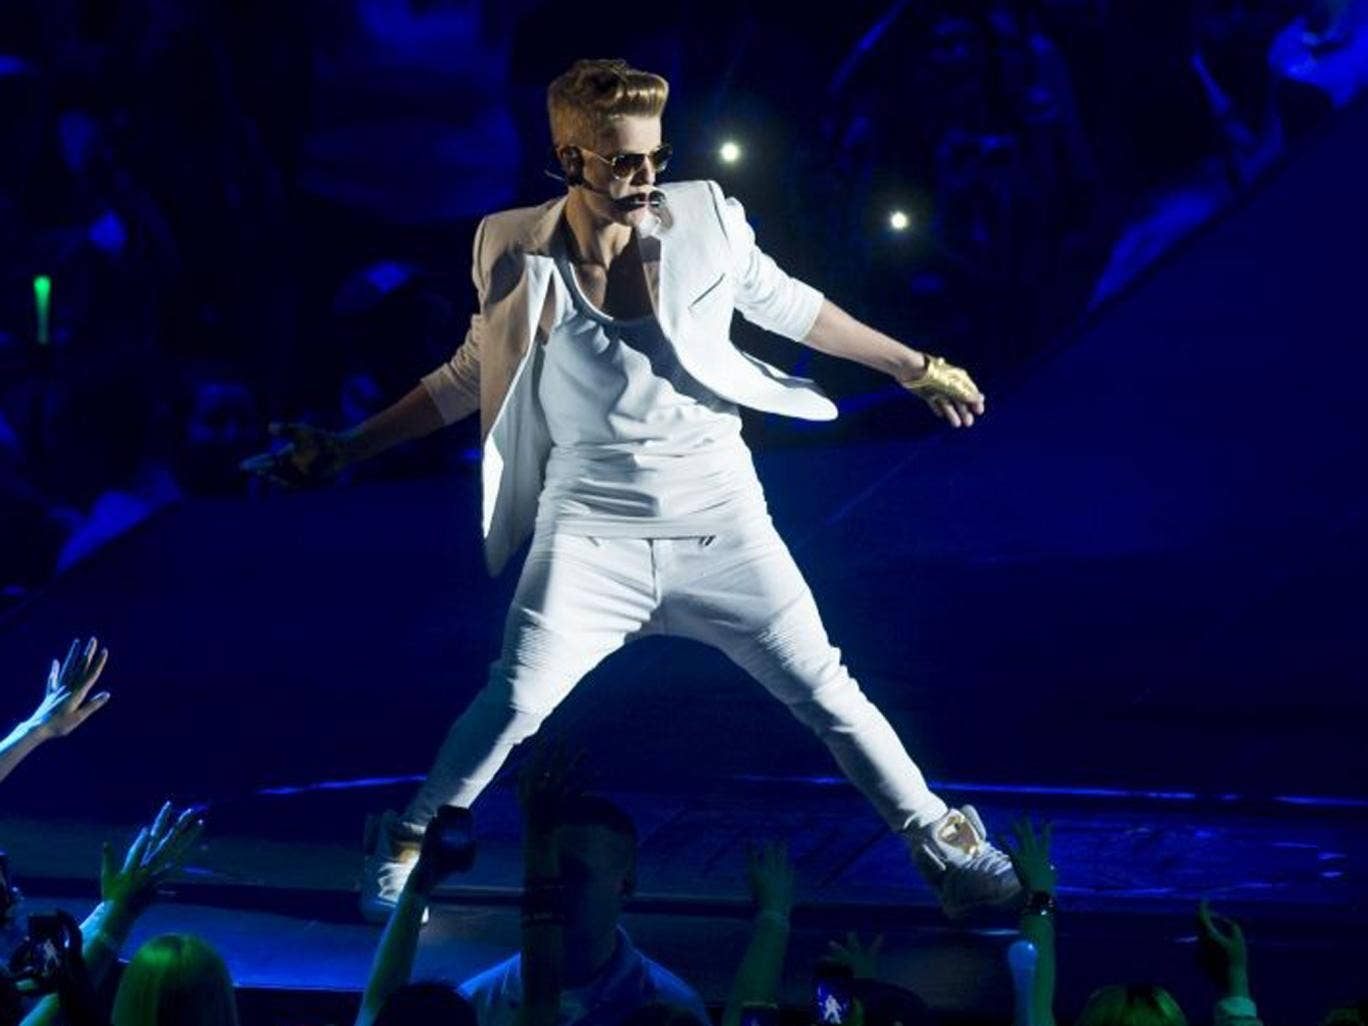 Just Bieber performs at the 02 in London after arriving on stage two hours later than scheduled